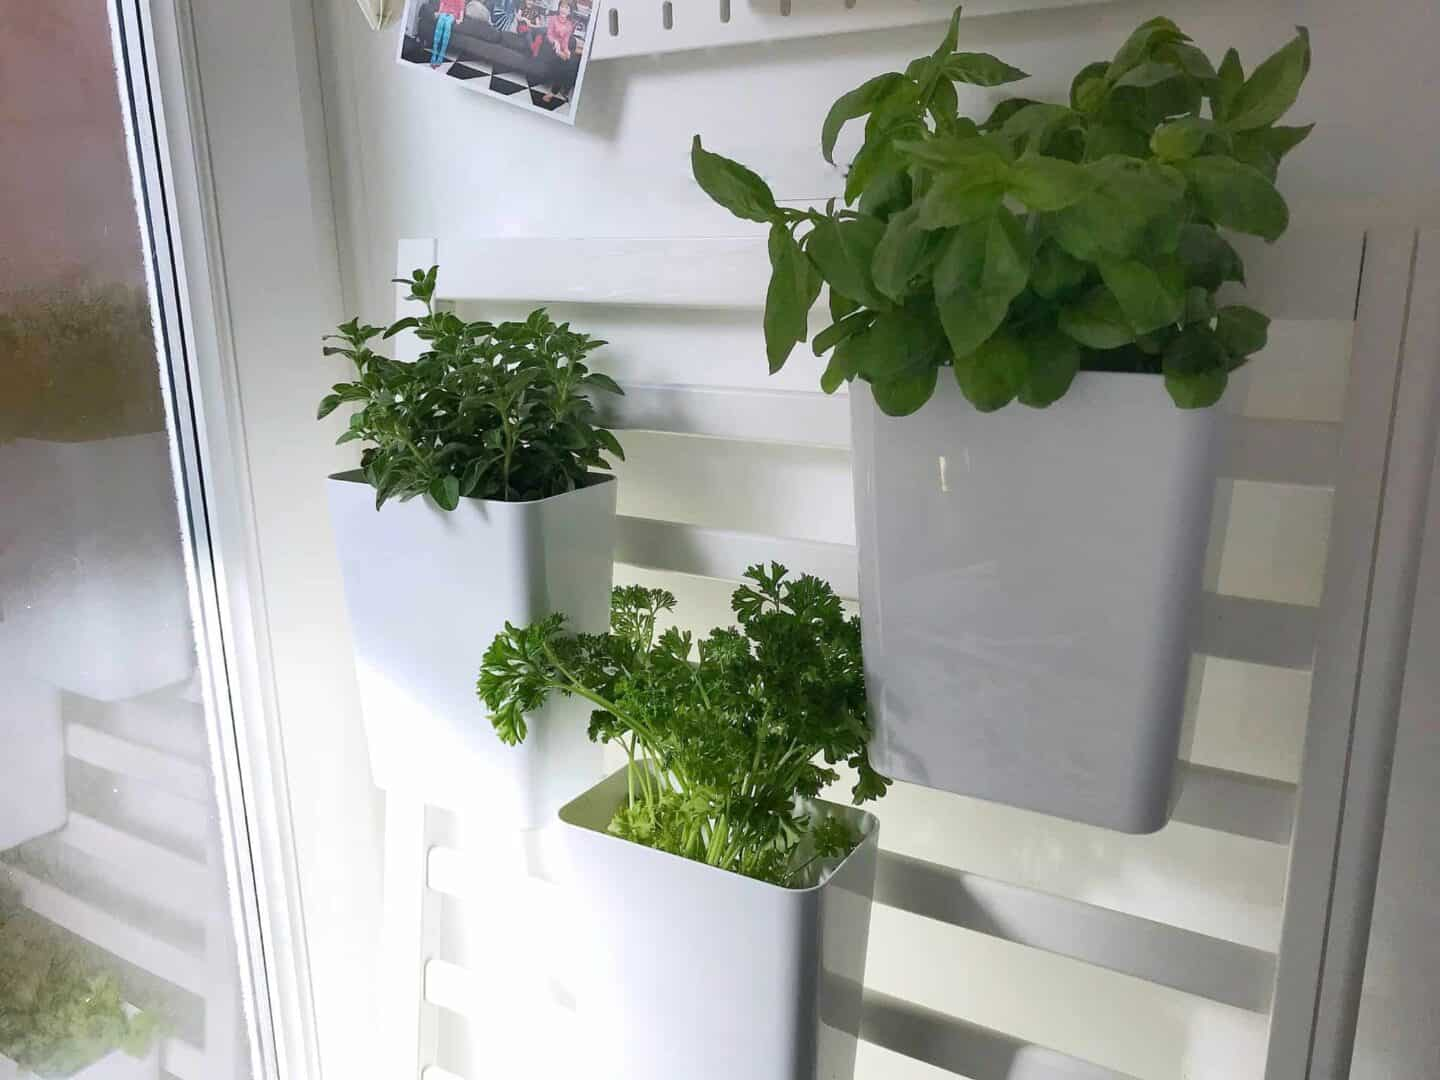 How to Make an Indoor Salad Garden from an Old Cot Side